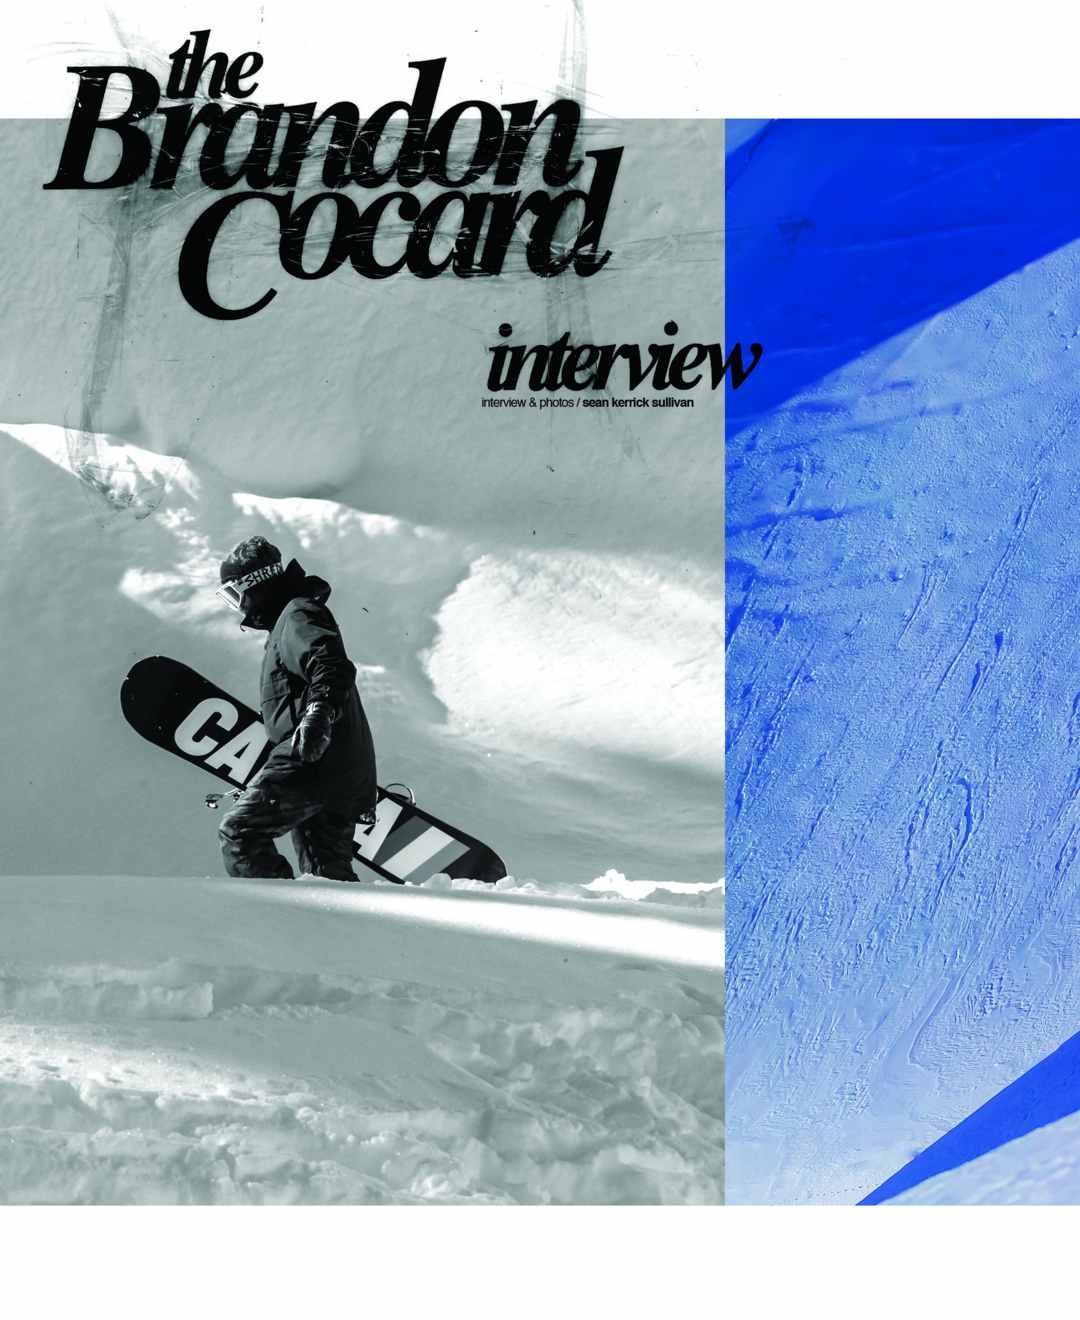 Read story: The Brandon Cocard Interview